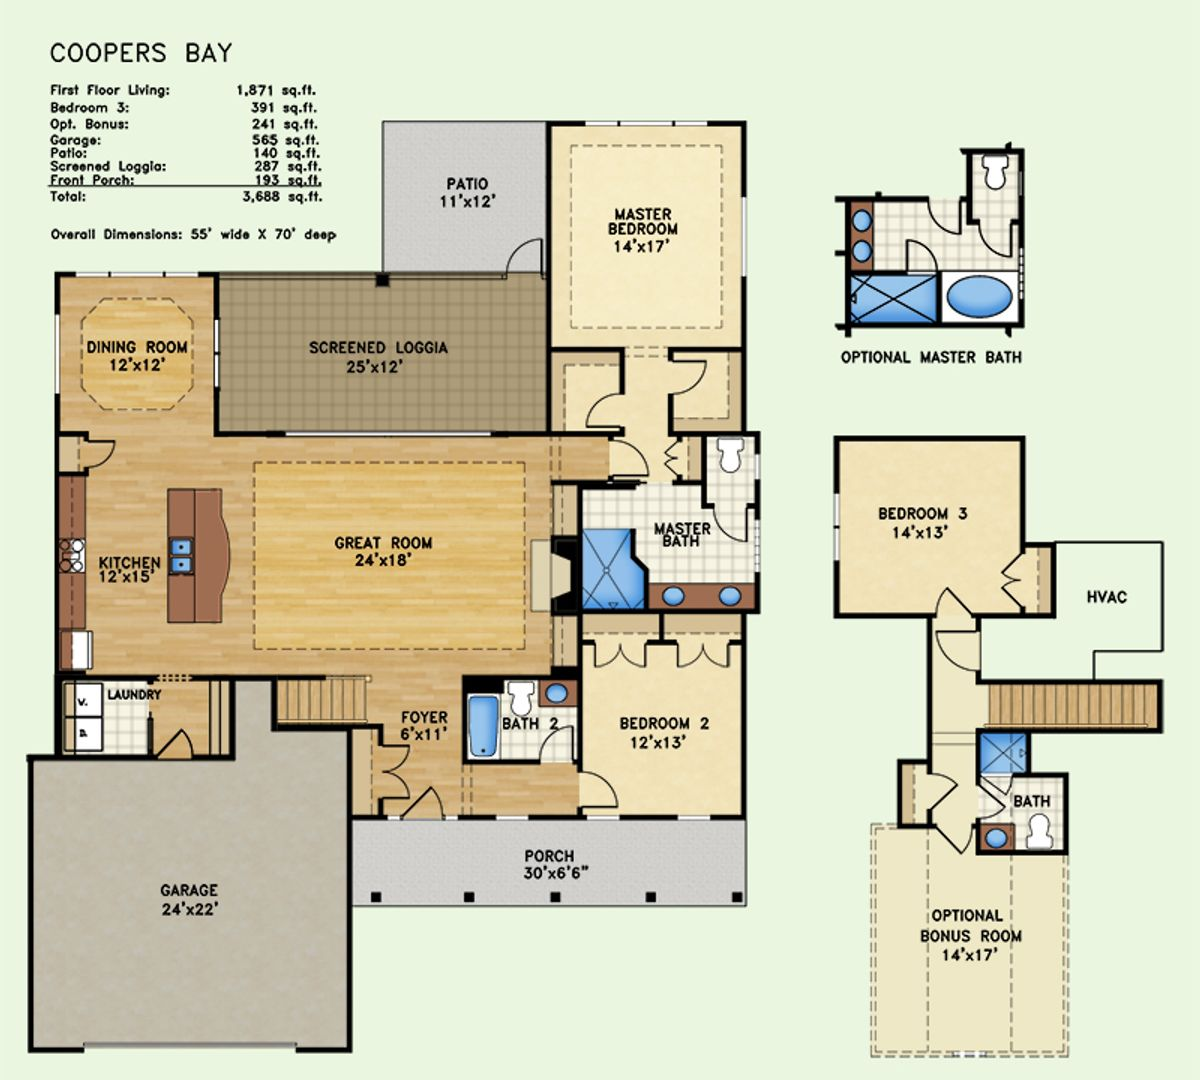 Cooper's Bay, Floor Plan